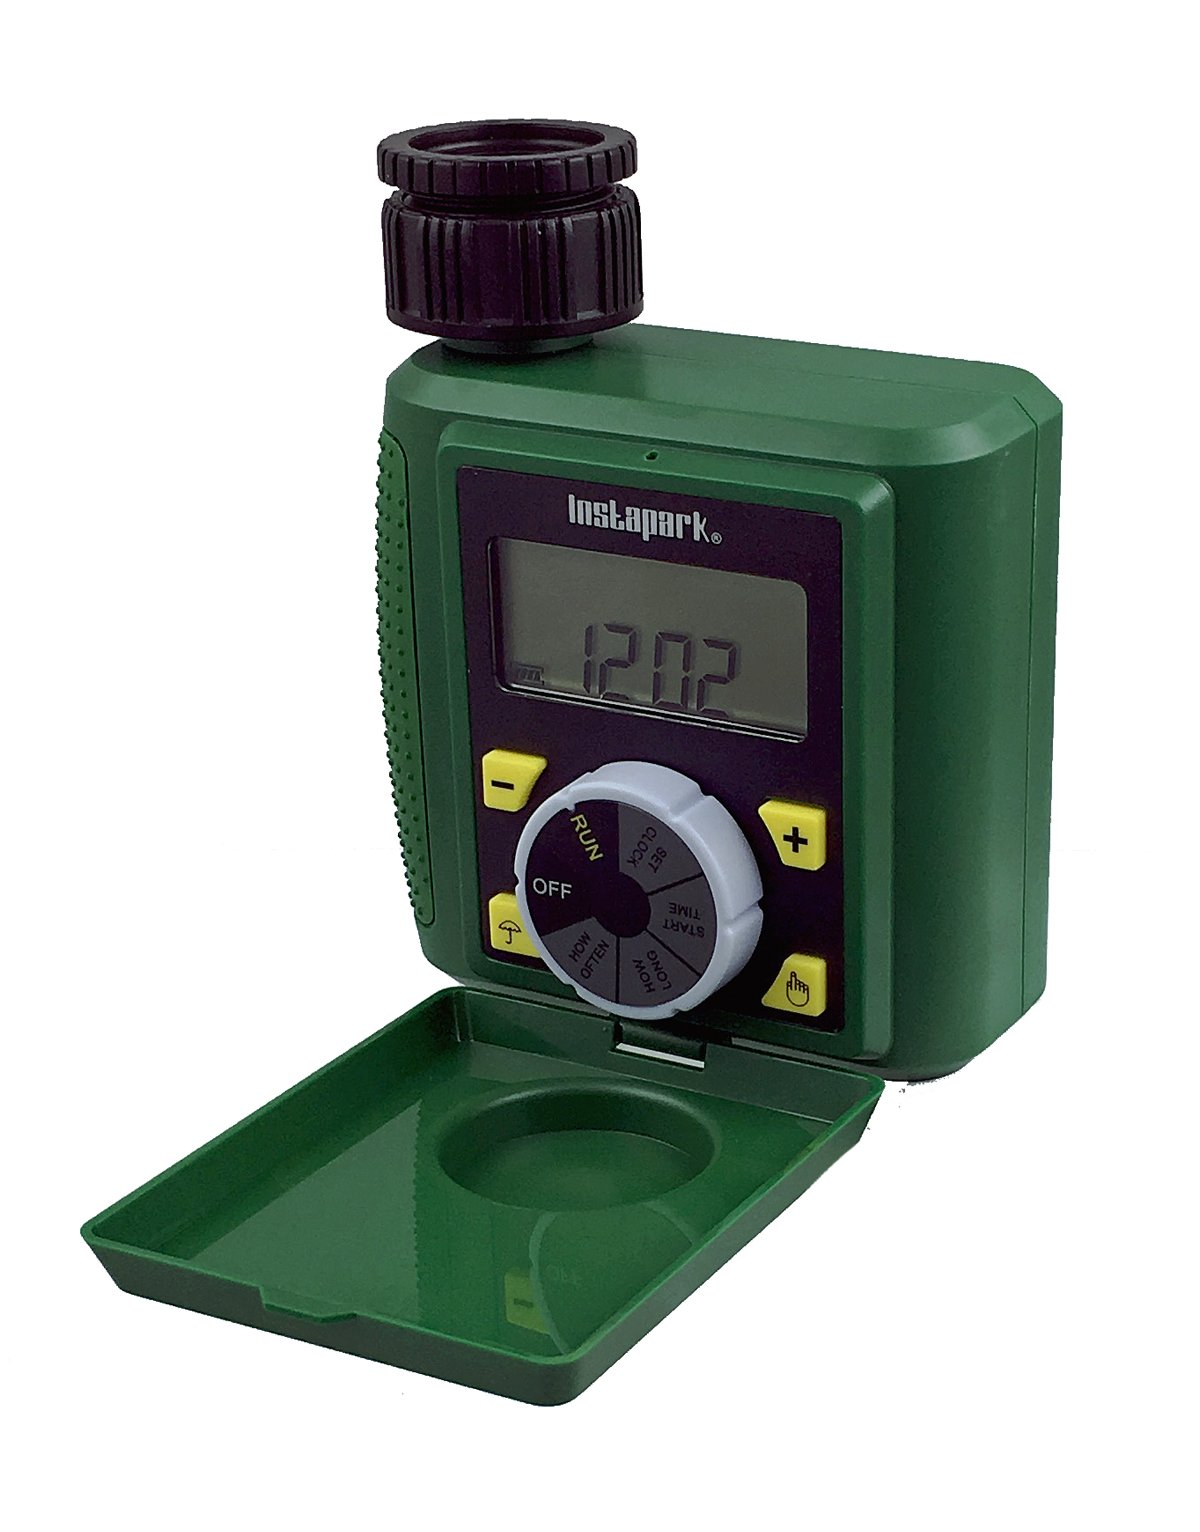 Instapark PWT-07 Outdoor Waterproof Digital Programmable Single Outlet Automatic On Off Water Faucet Hose Timer with Rain Delay and Manual Control by Instapark (Image #2)